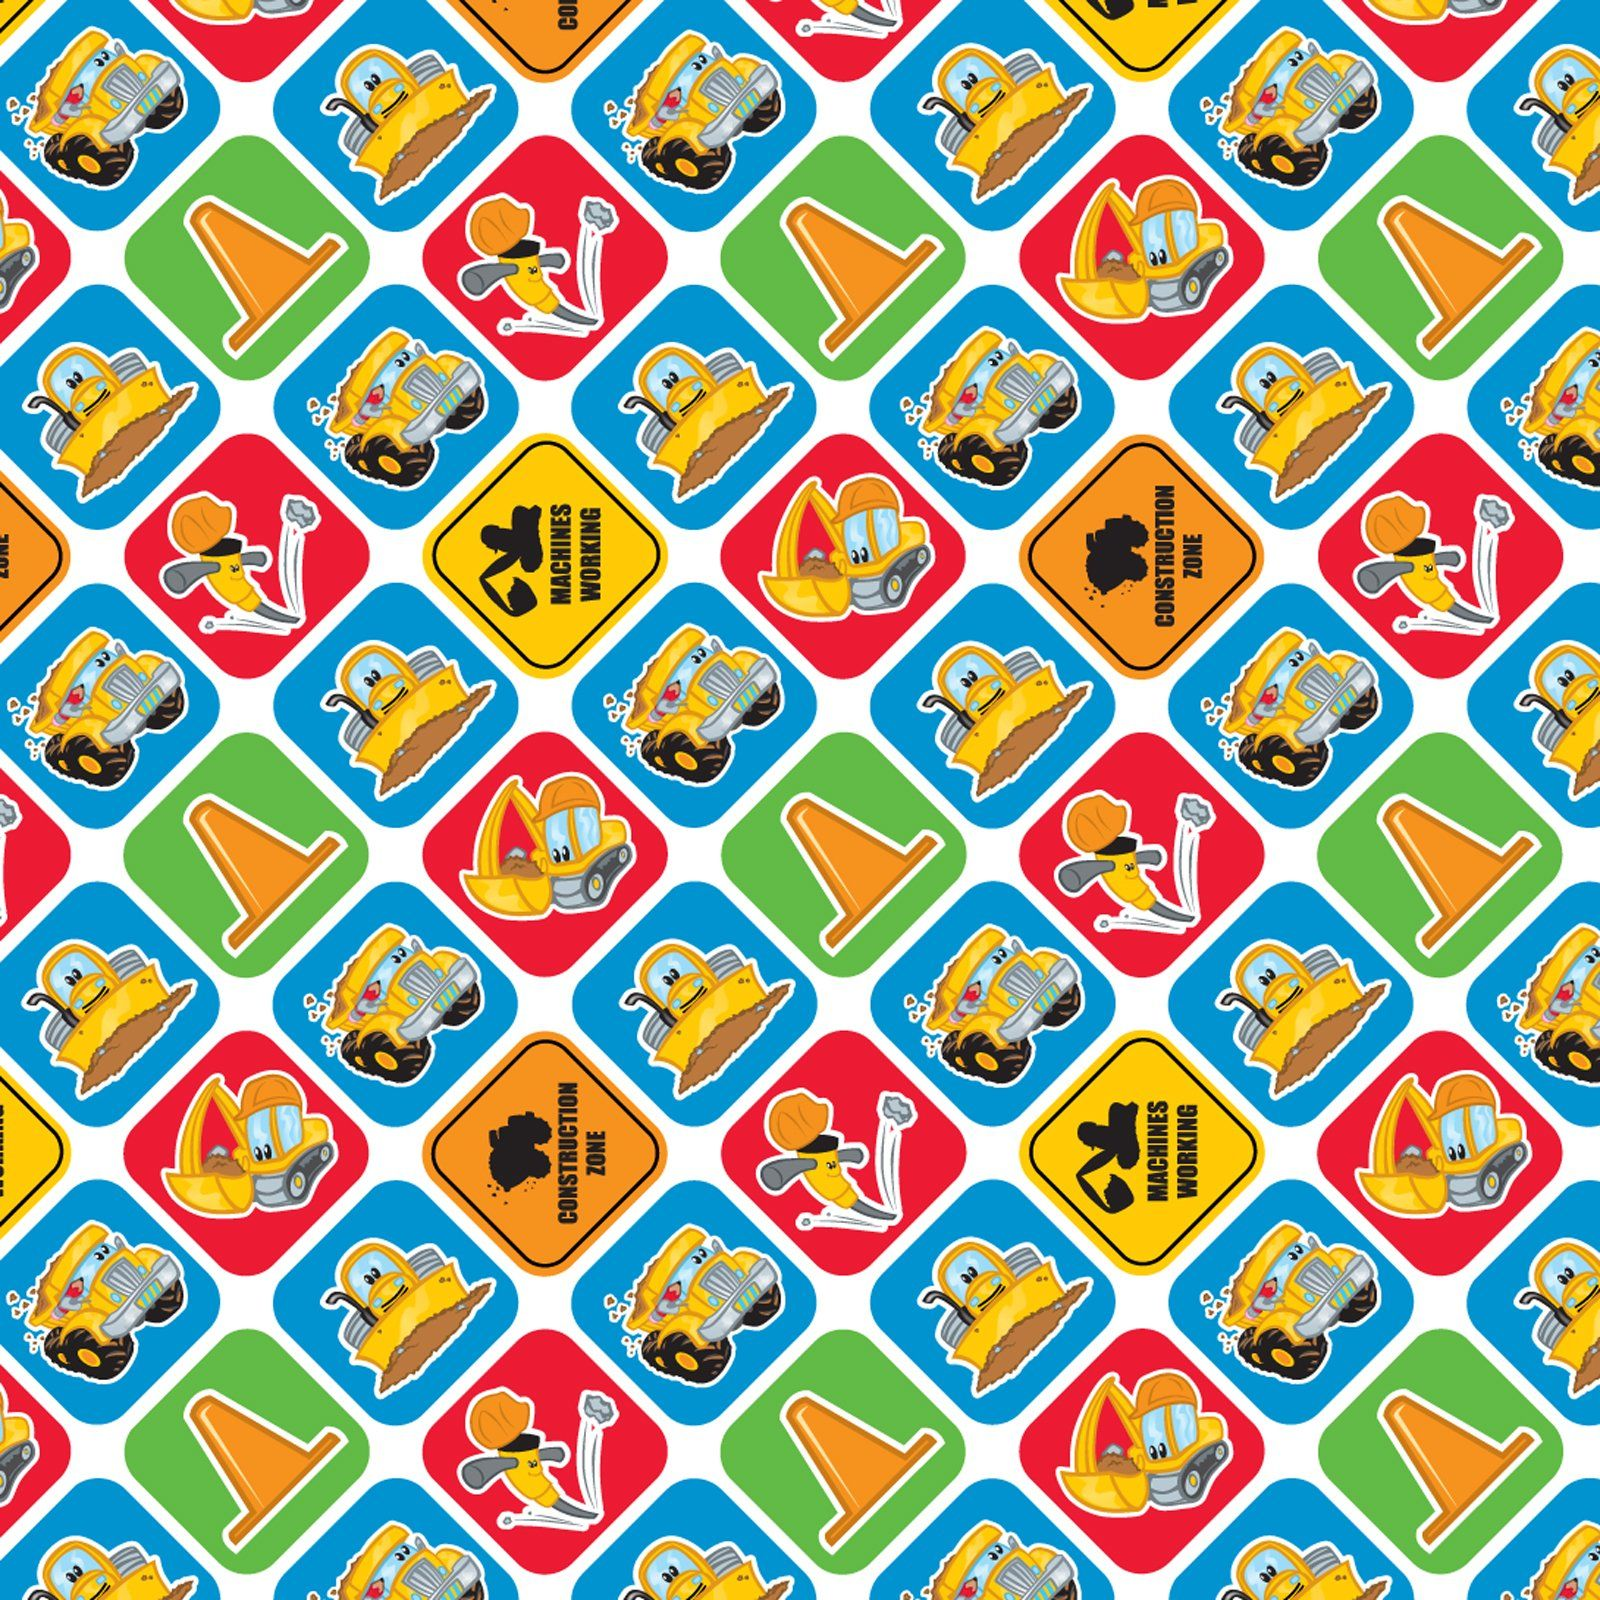 wrap up that special present with this construction themed wrap